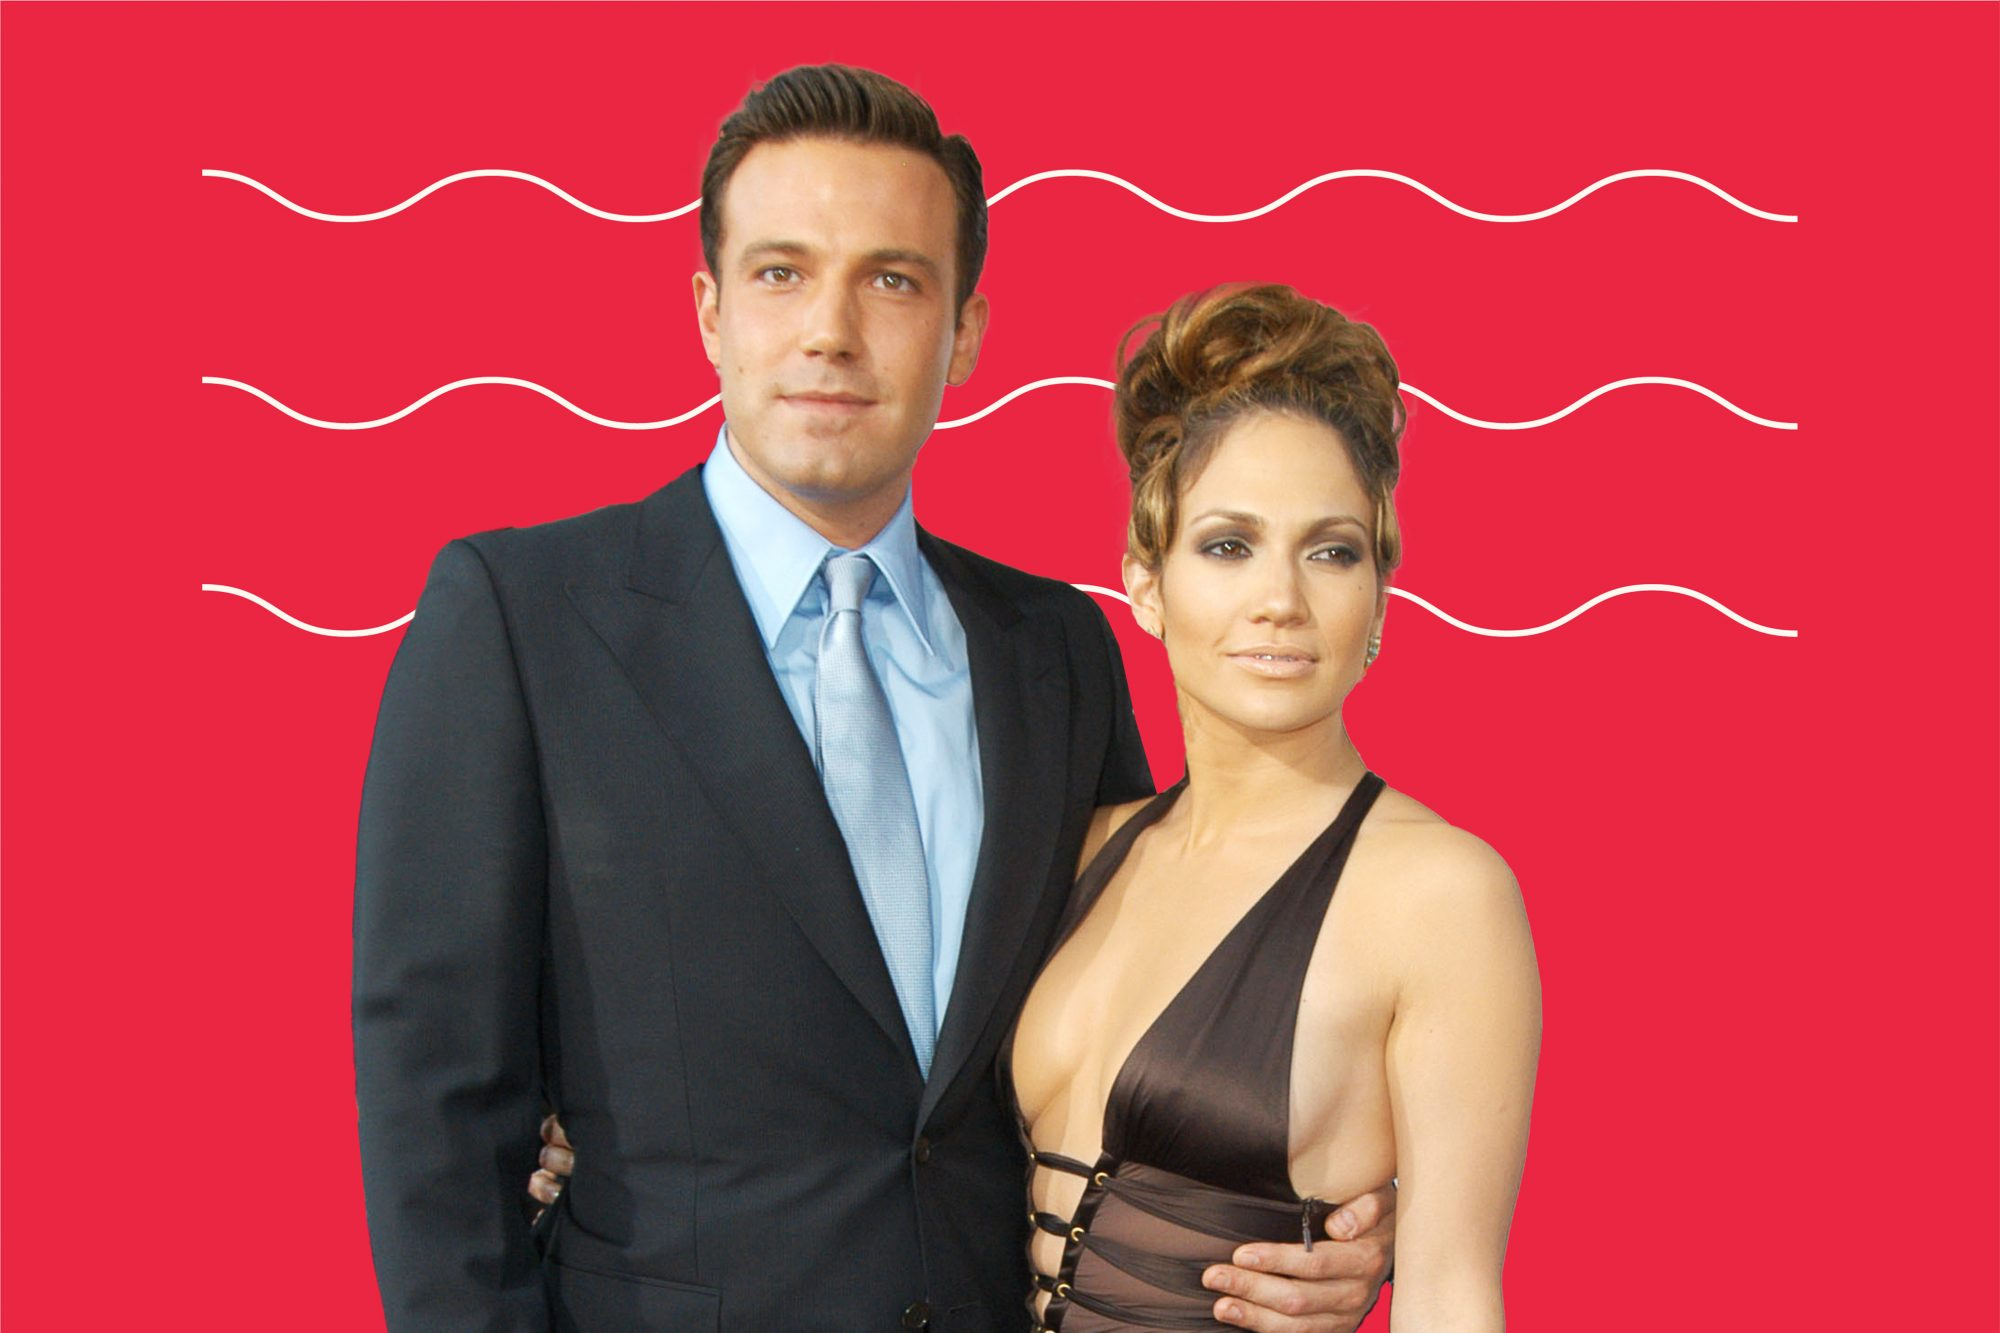 Jennifer-Lopez-and-Ben-Affleck-Are-Reportedly-Starting-To-Talk-About-Their-Future-GettyImages-175143491